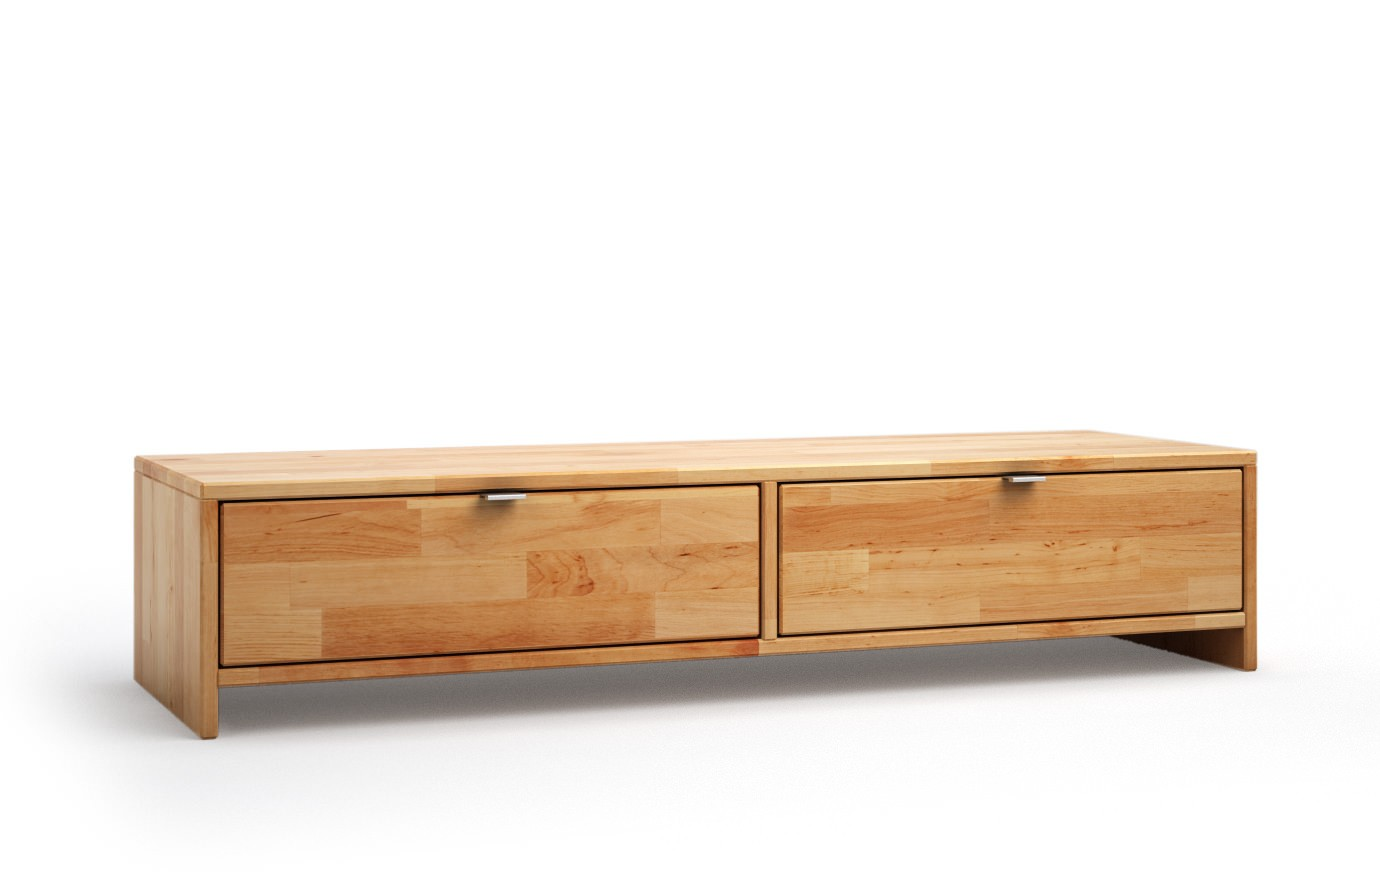 Highboard Vollholz Vollholz Sideboard Trendy Kommode Gelaugt Gelt Kiefer